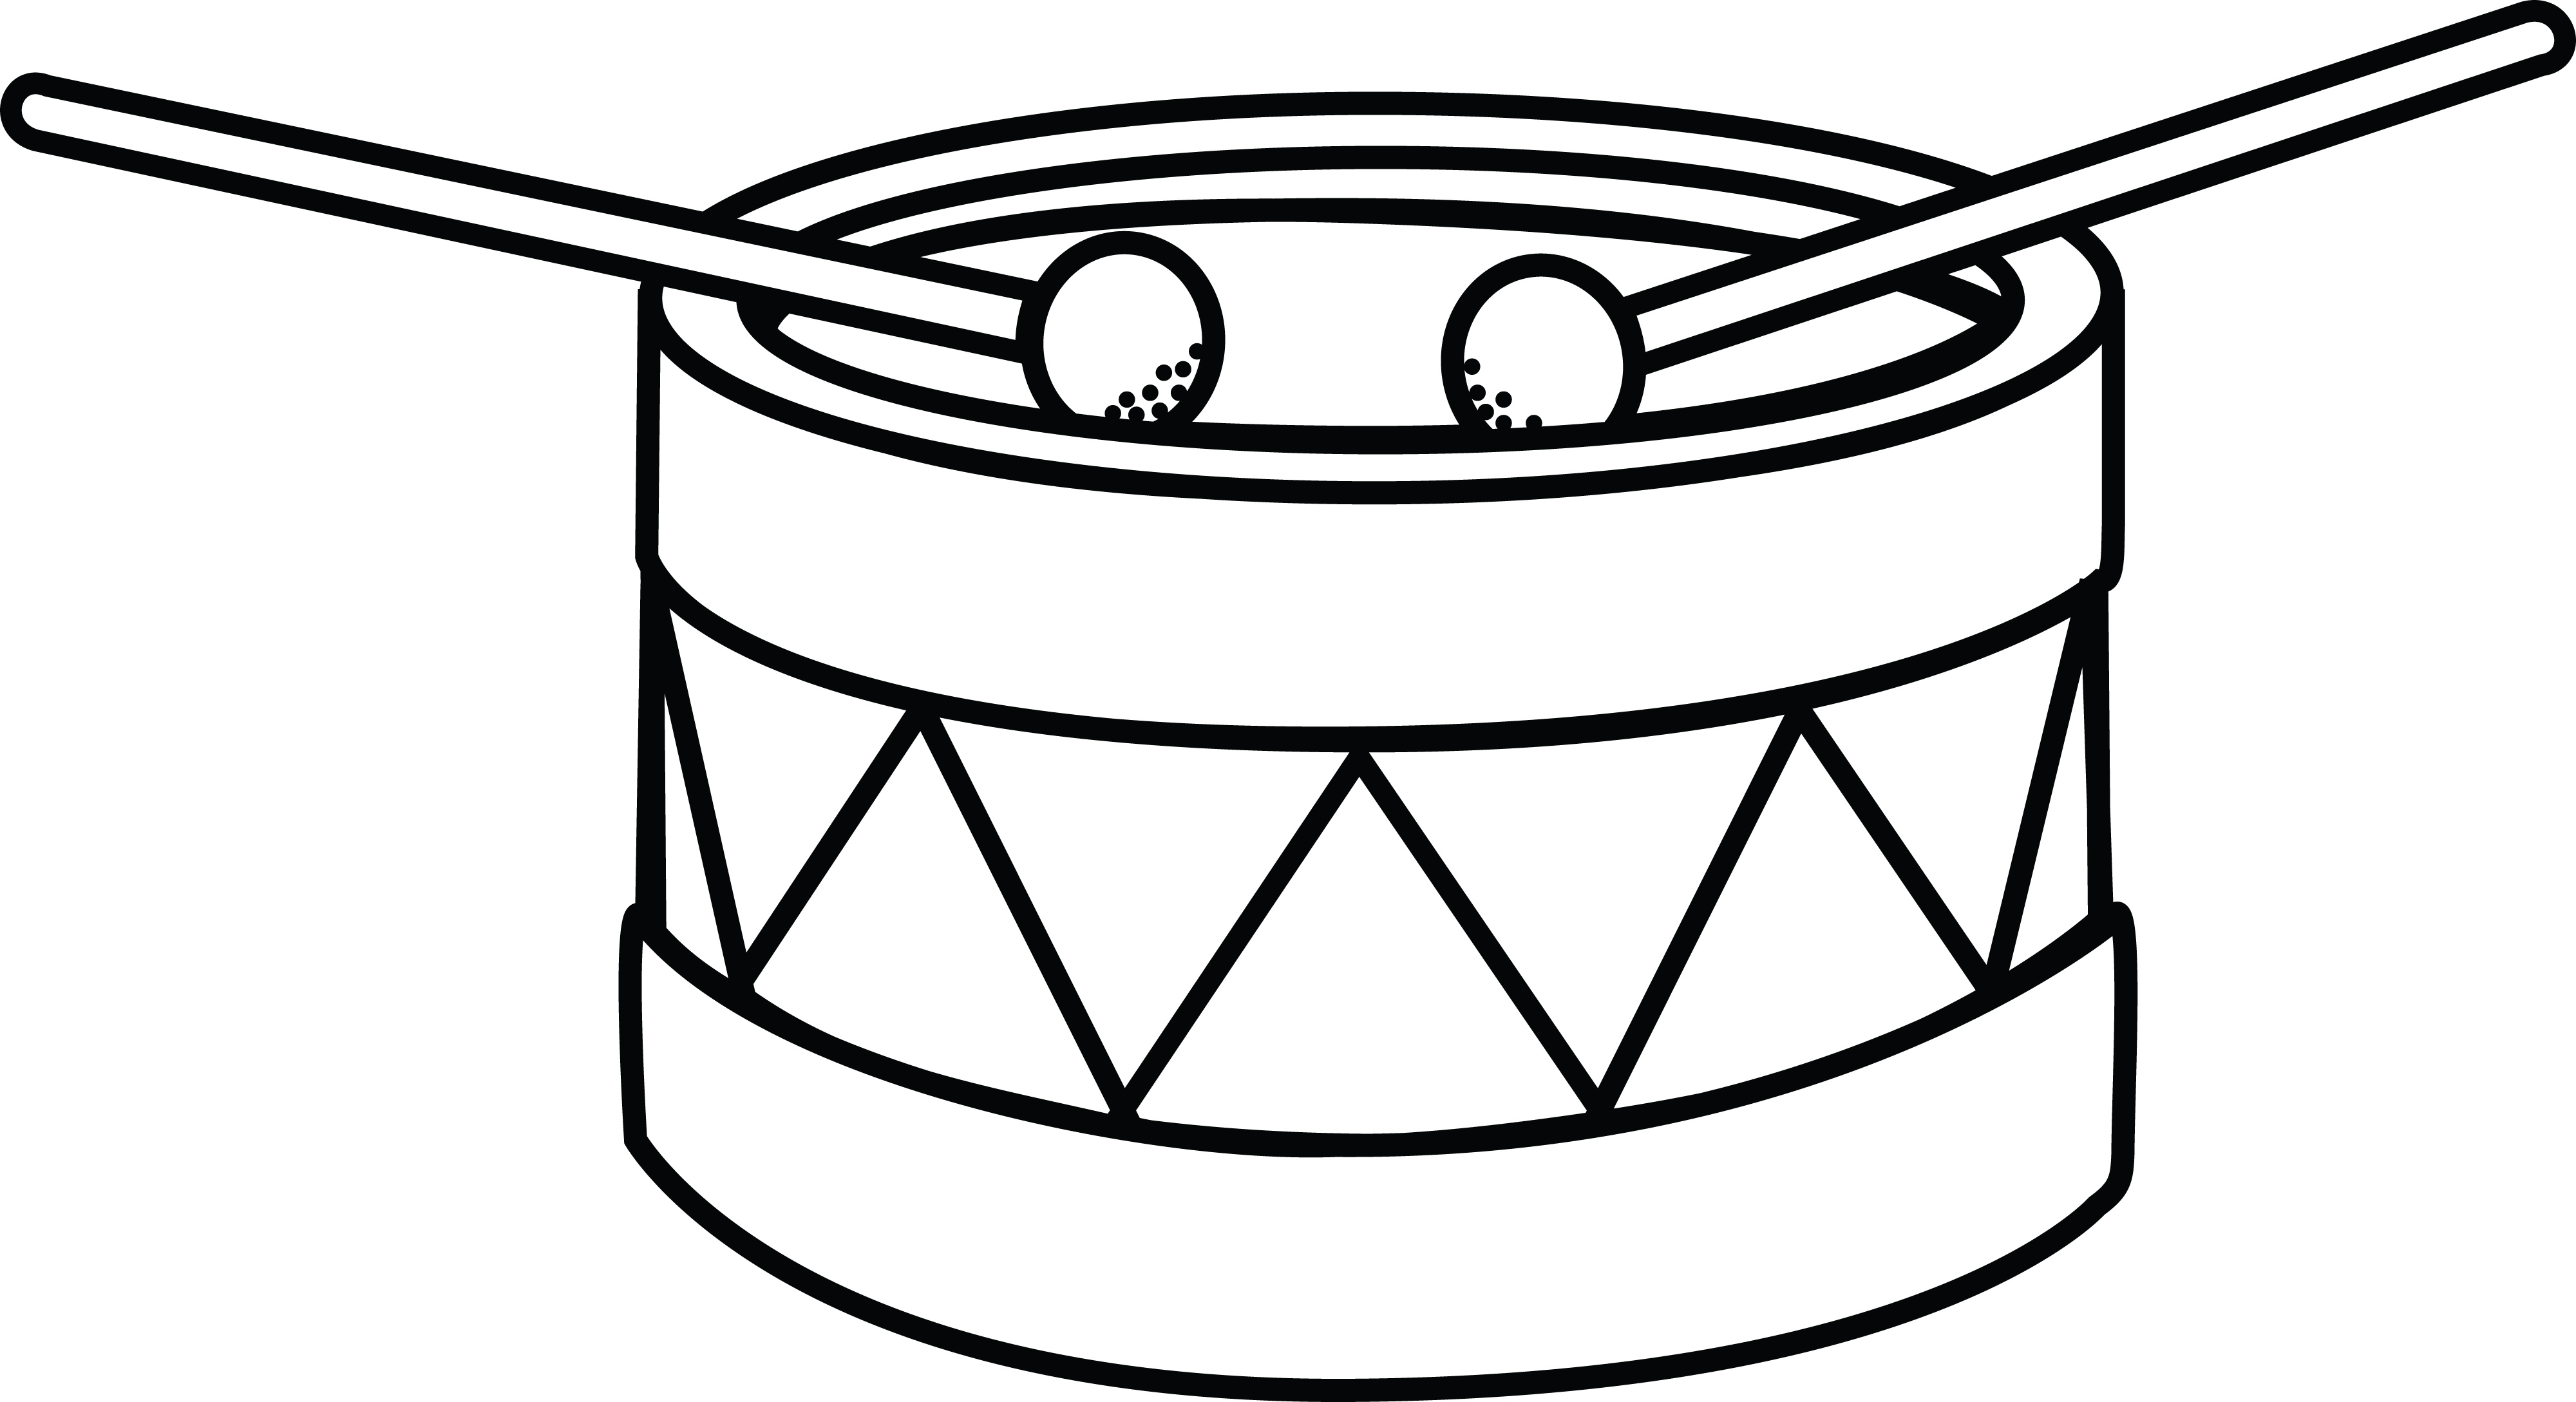 Snare drum sketch at. Drums clipart file